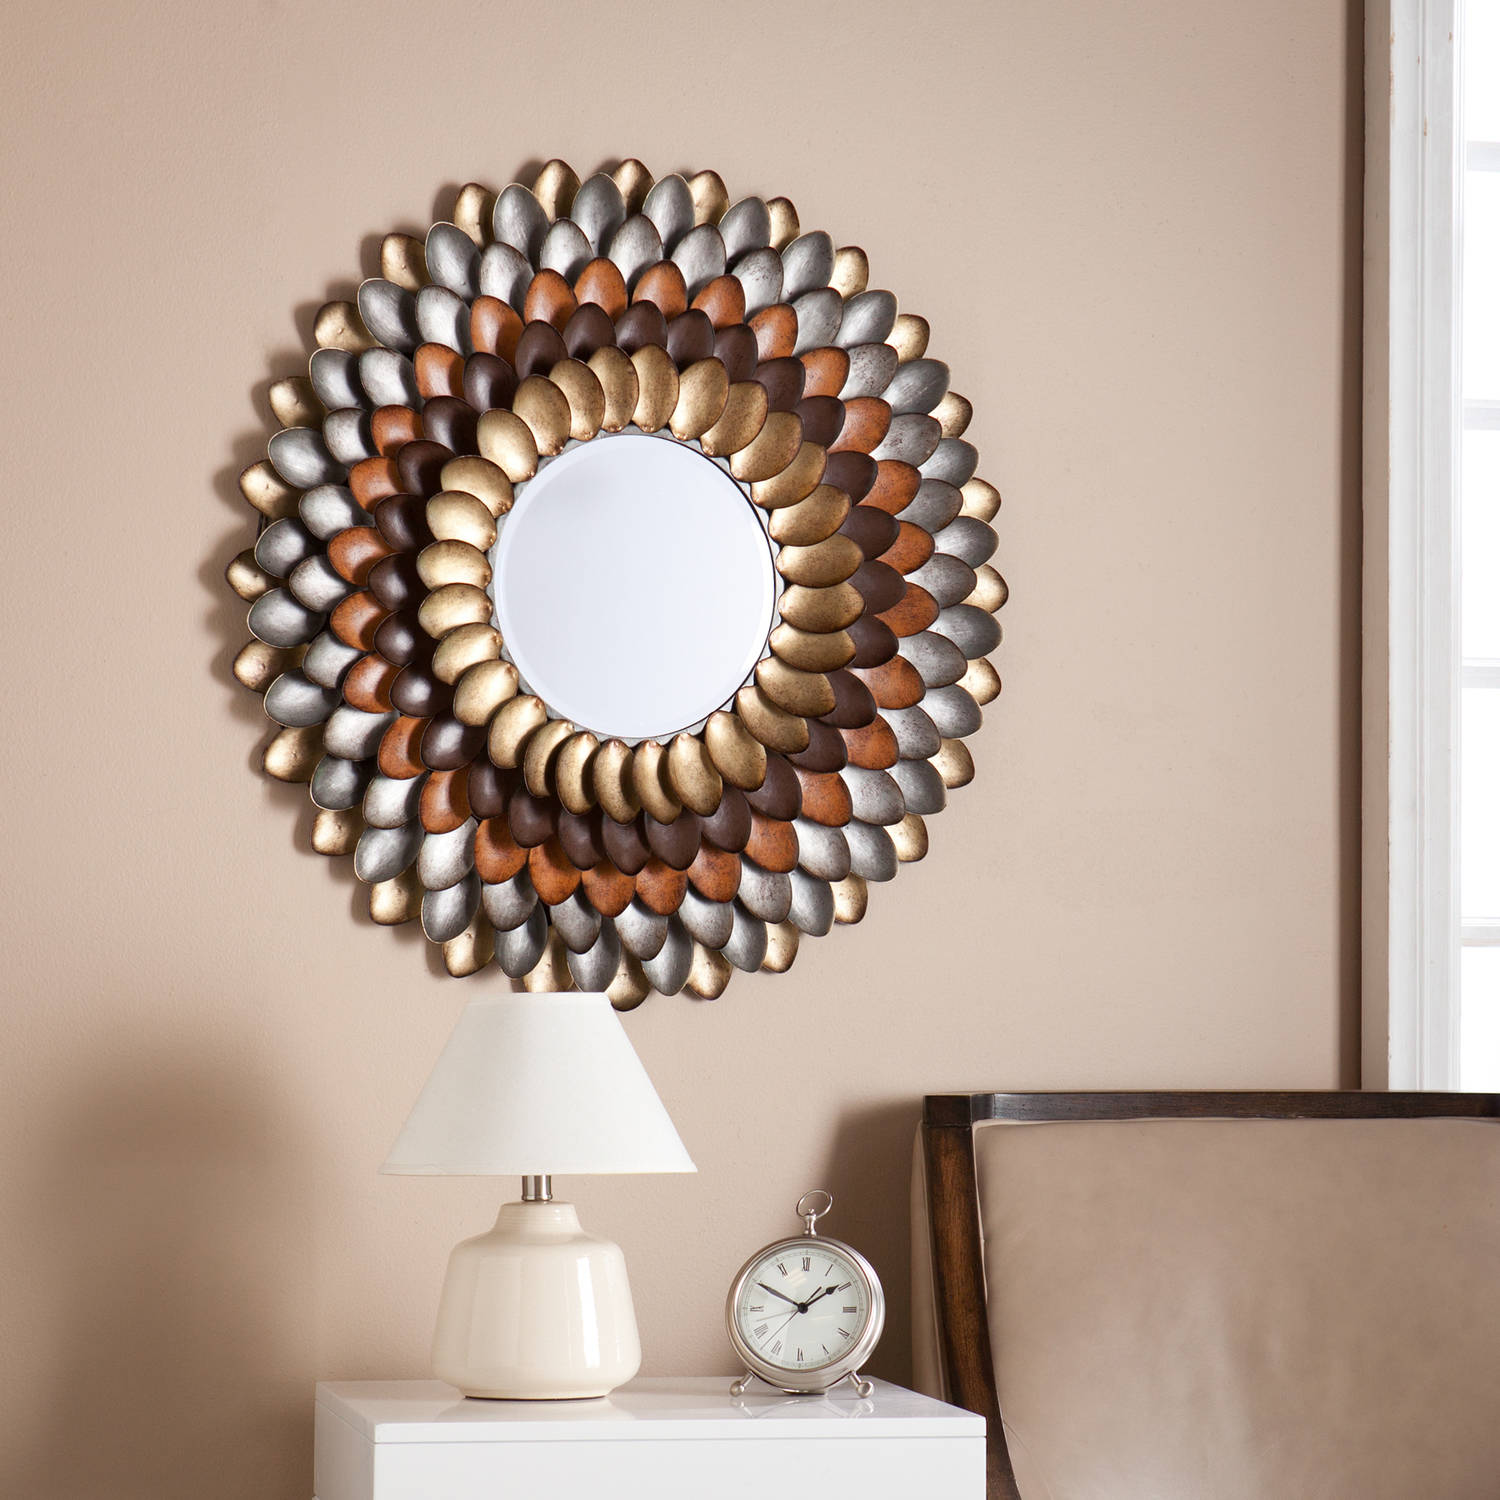 Southern Enterprises Metallic Petals Decorative Round Mirror, Multicolor